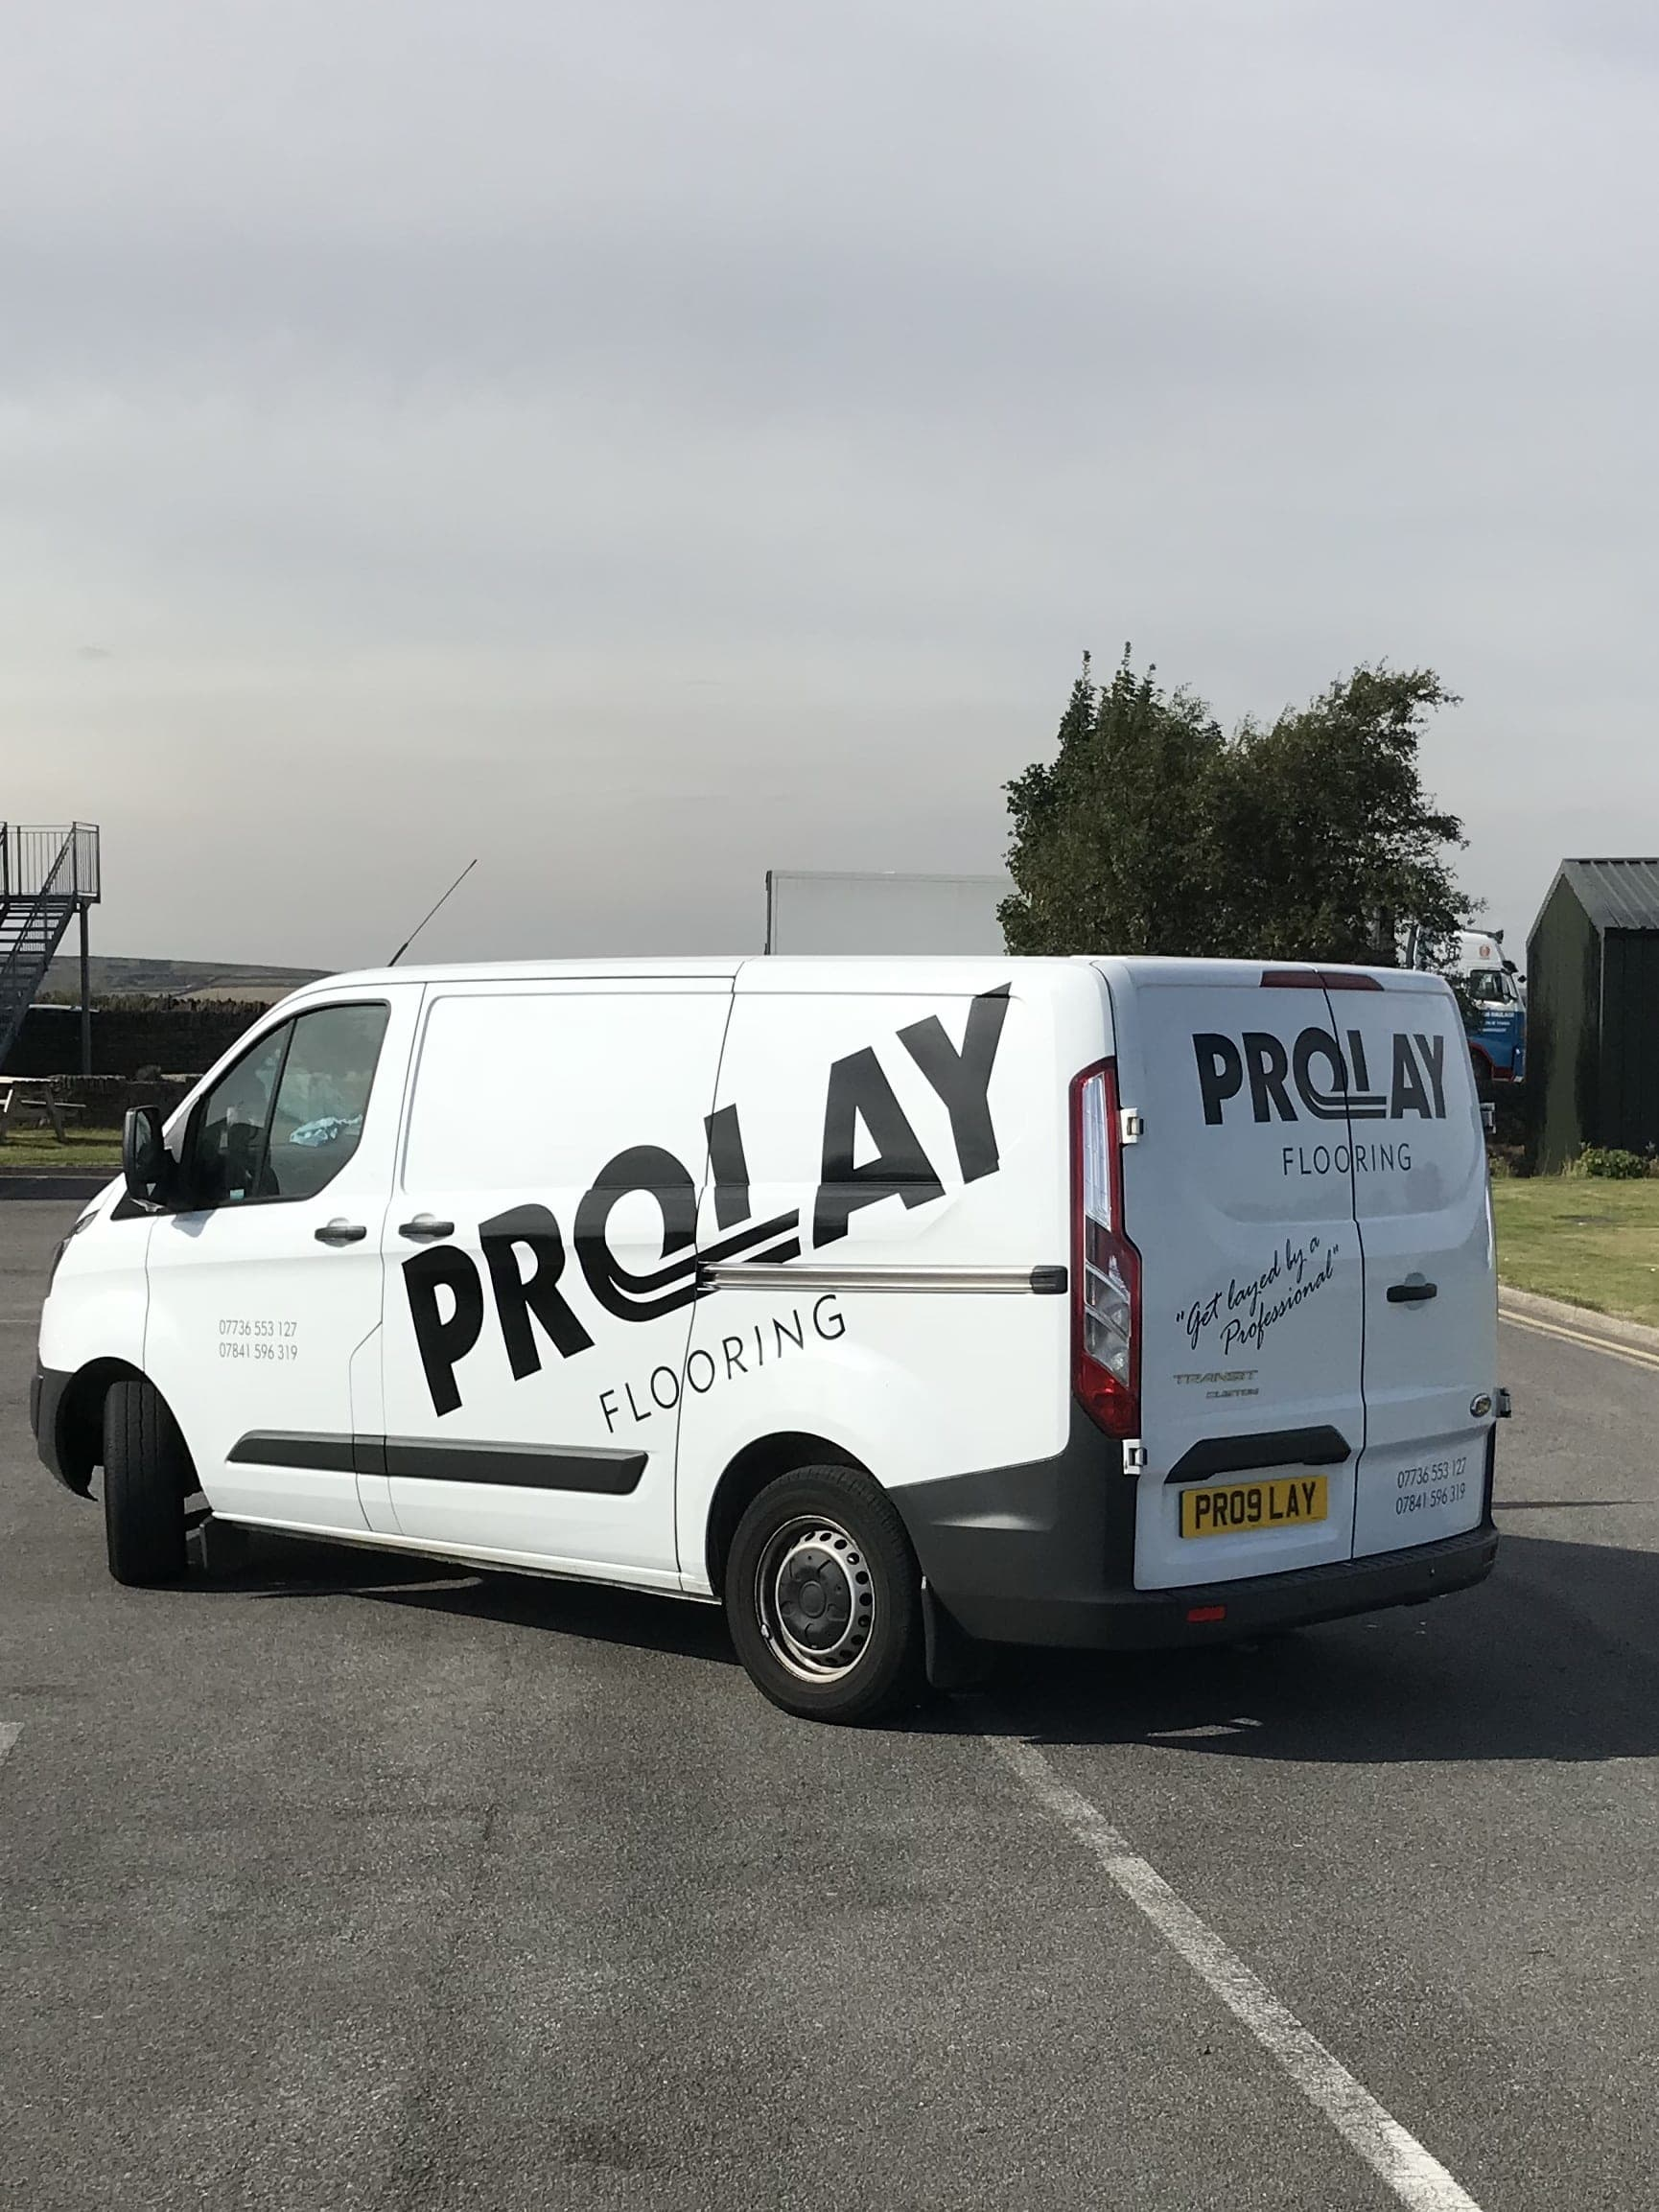 PROLAY FLOORING  Complete Flooring Services. Fitting all types of flooring since 1978